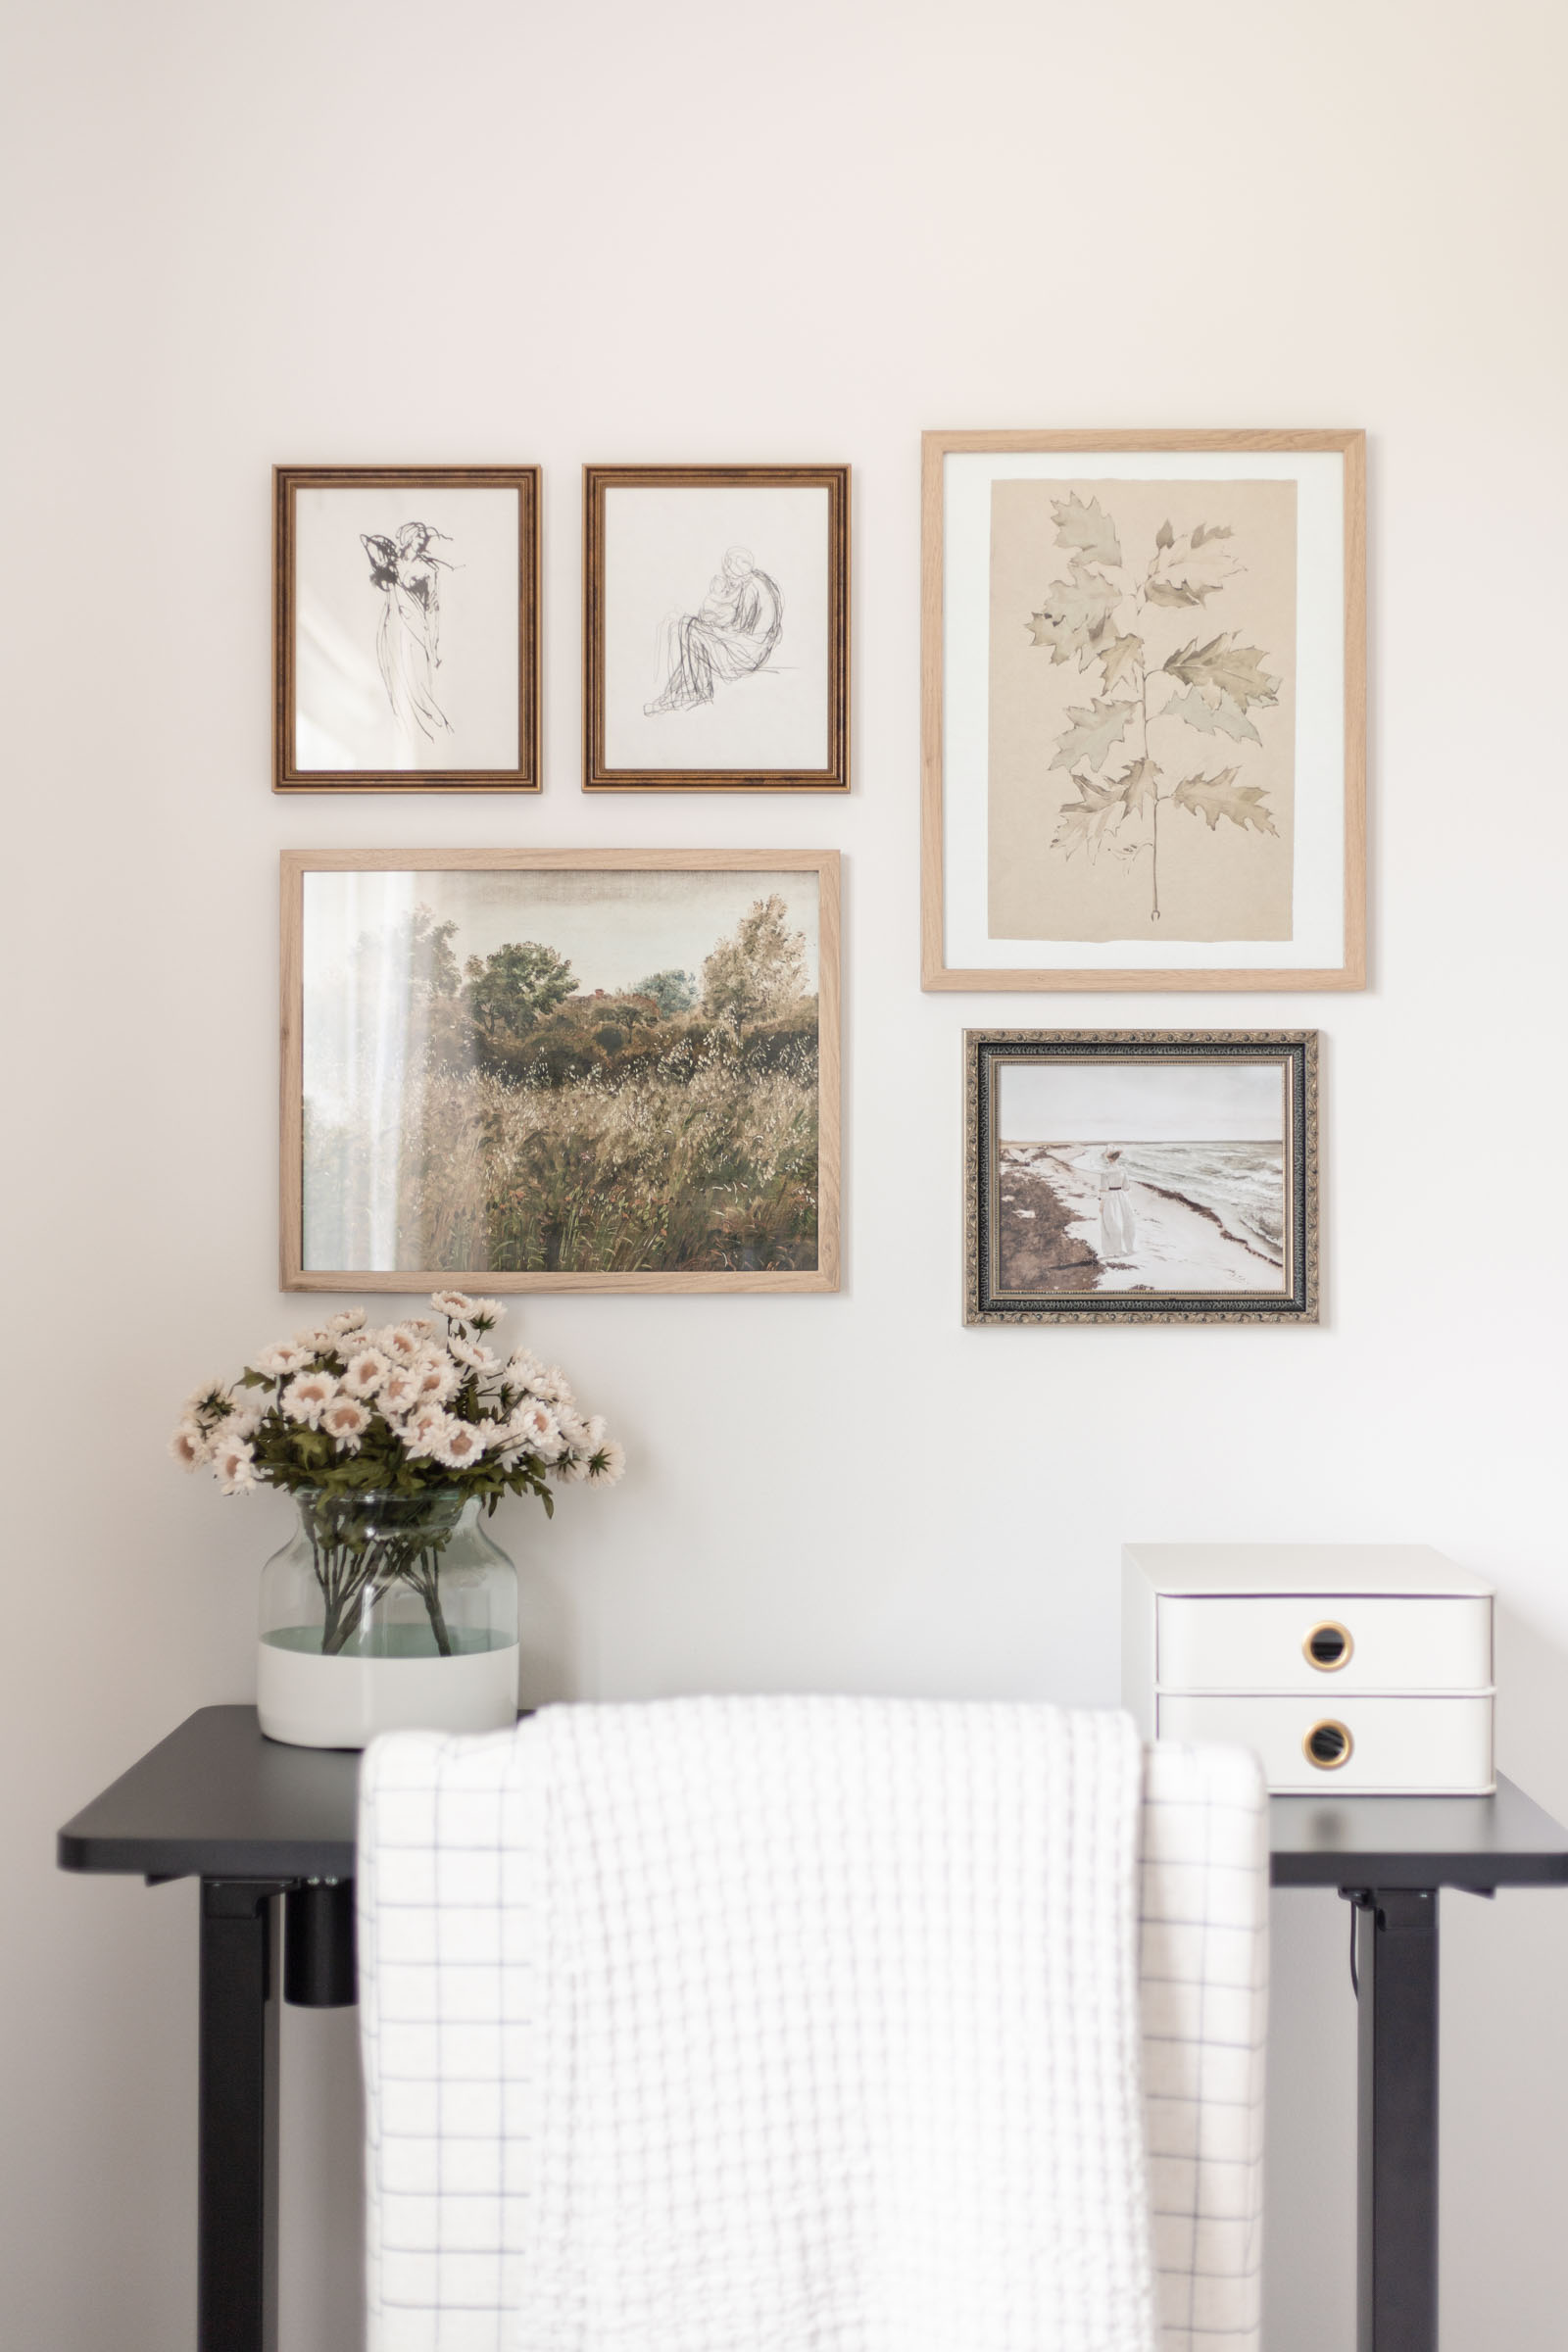 Bedroom Office Nook (and Vintage Art Gallery Wall) | black sit to stand electric standing desk, poetto vase, collected antique art gallery wall